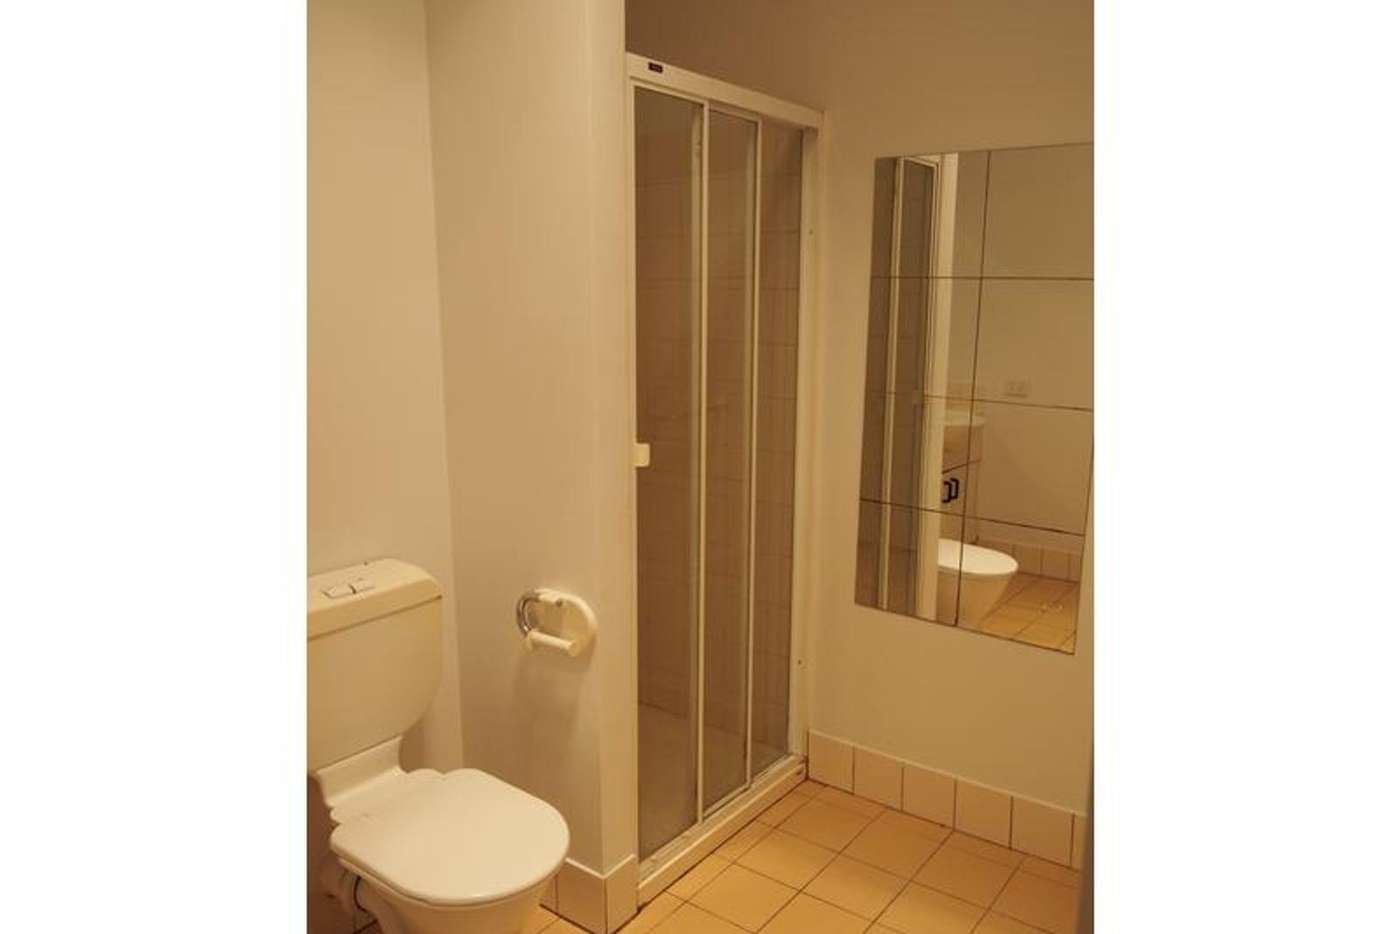 Seventh view of Homely apartment listing, 6/25 Davisons Place, Melbourne VIC 3000